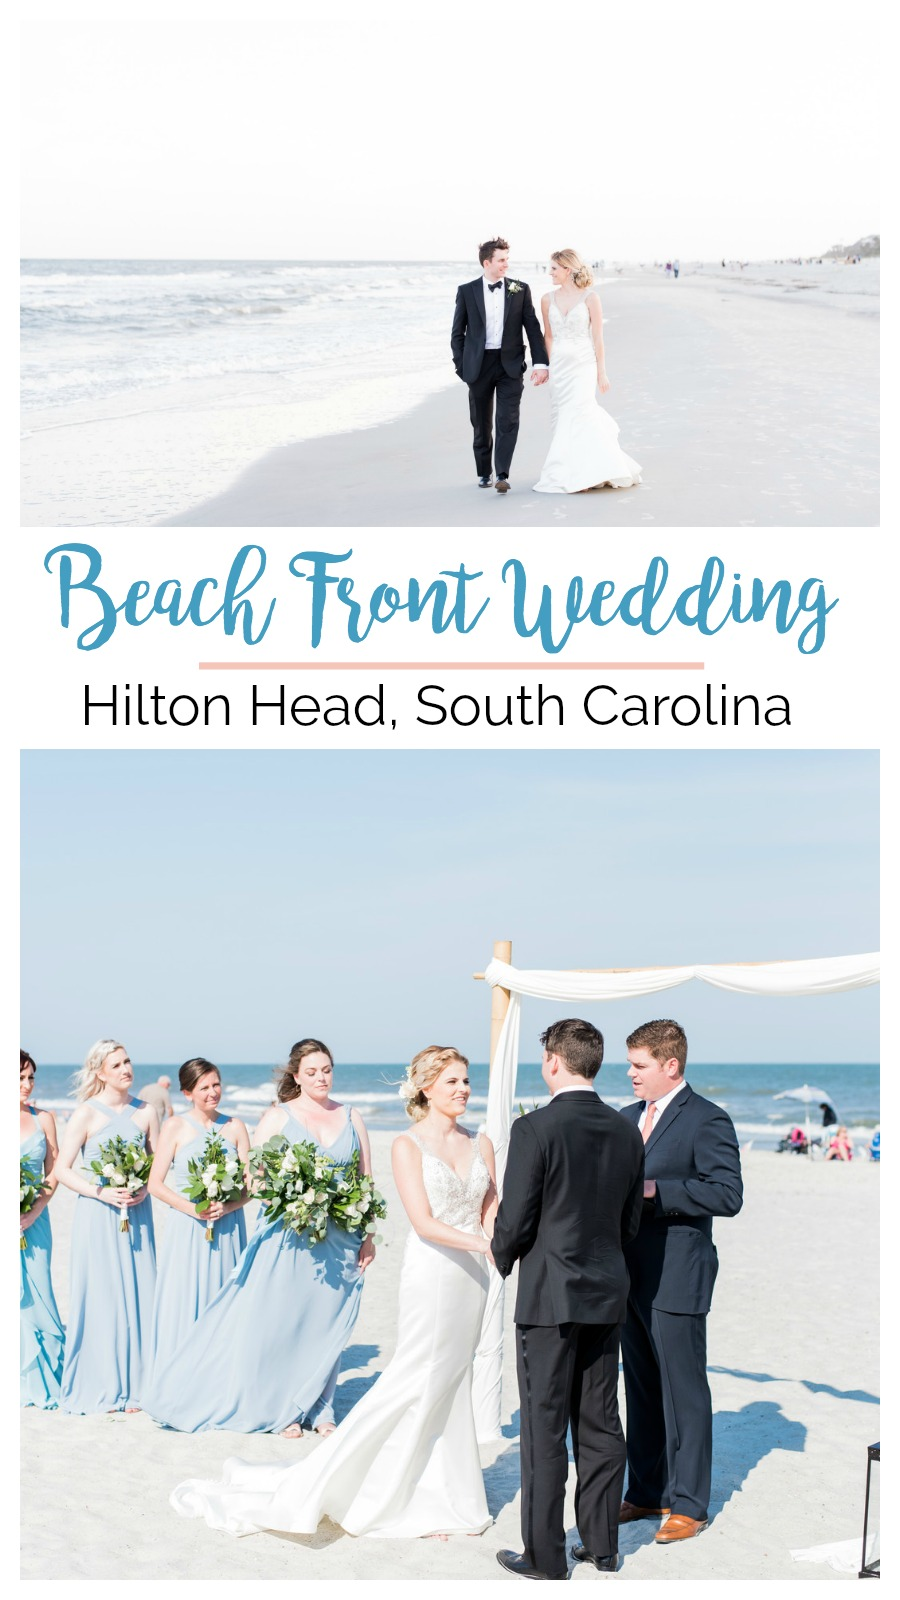 Jessica and Brian: Beach View Wedding at the Dunes House, Hilton Head Island, South Carolina | Palmetto State Weddings | beach front wedding | beach wedding inspiration